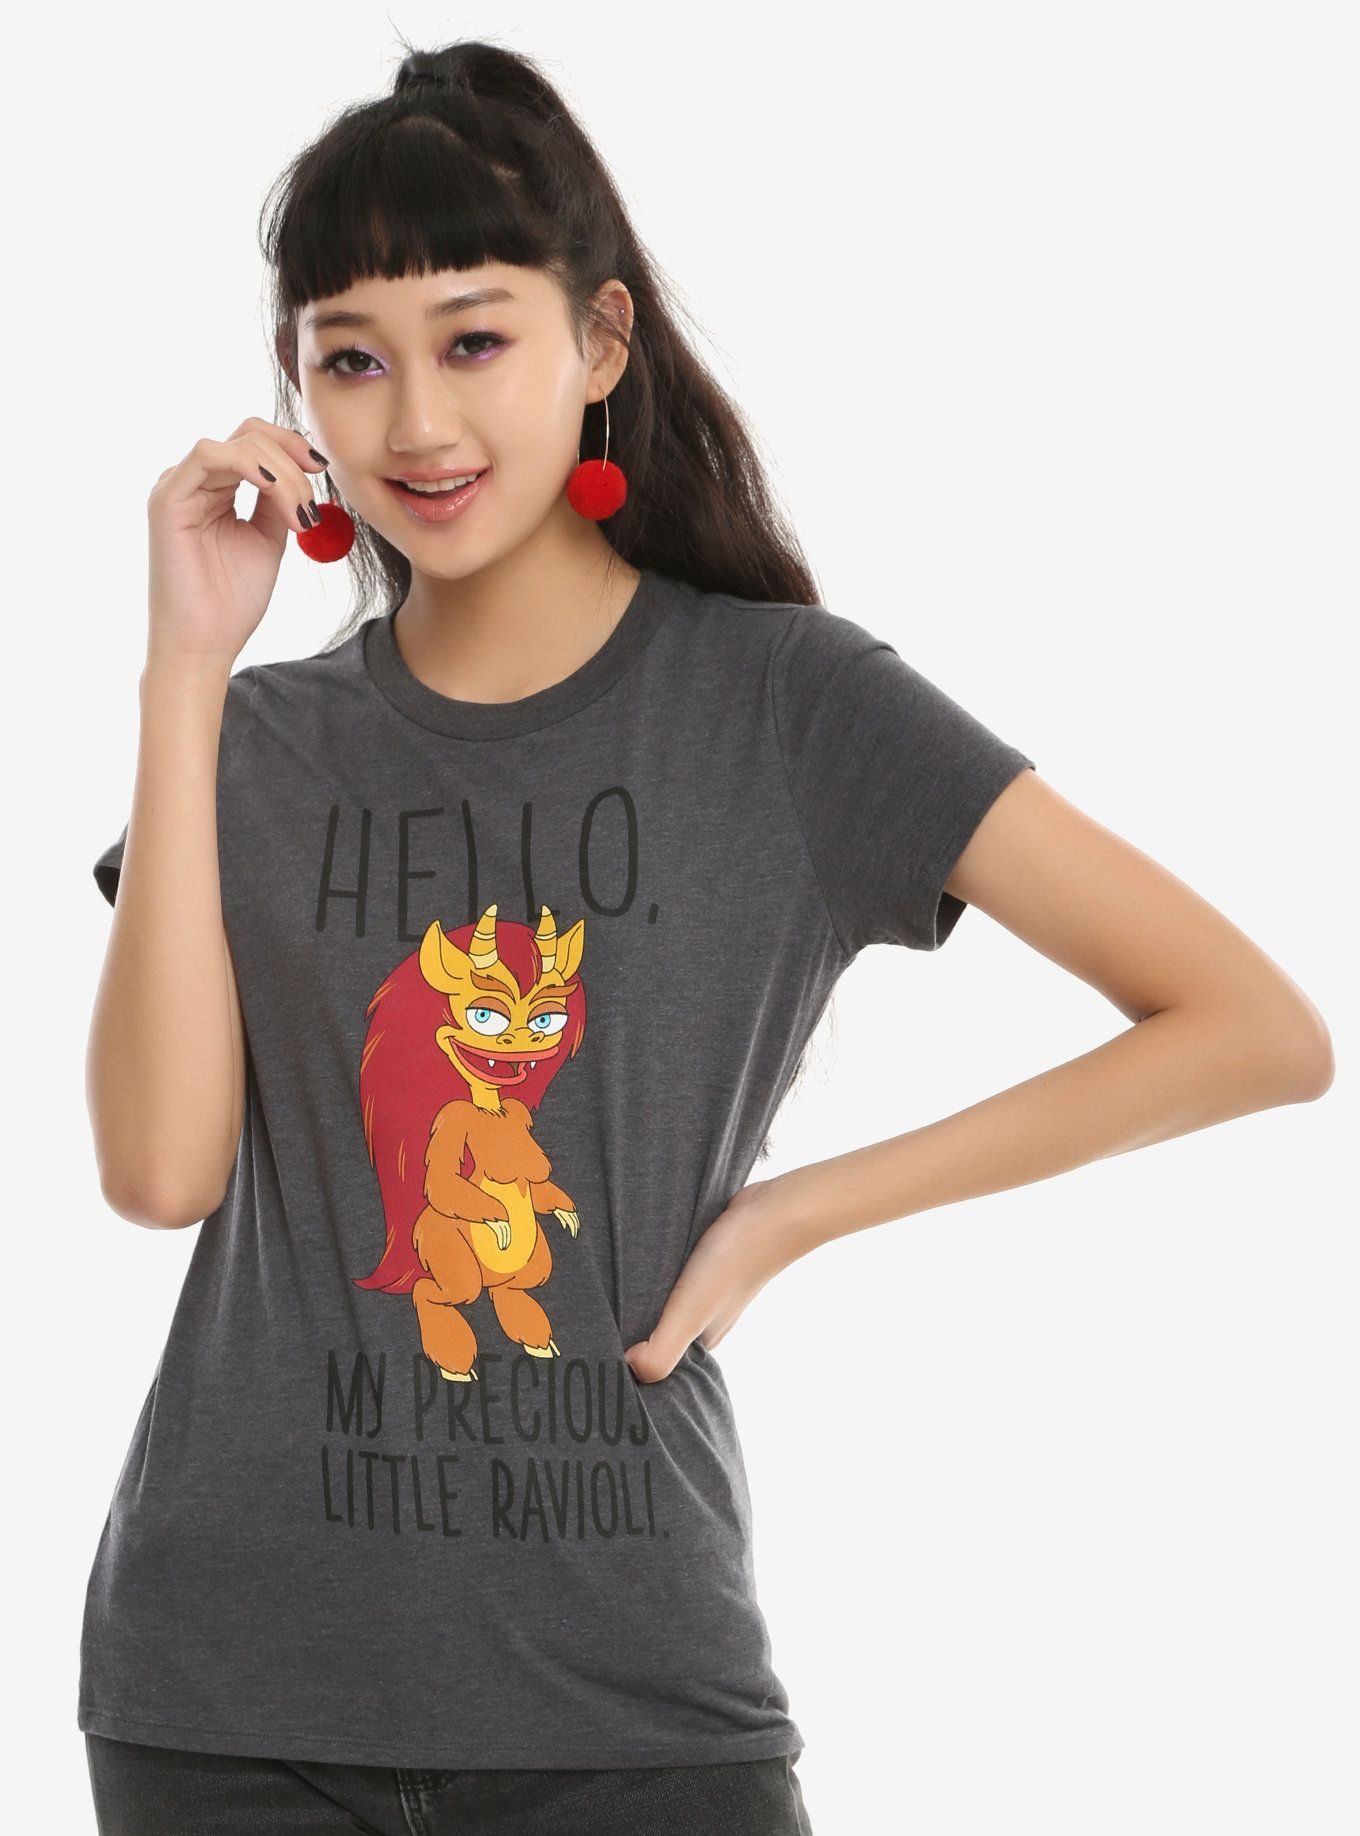 cbb498ab20e This fitted charcoal heather tee from the Netflix animated series Big Mouth  has a large graphic of the powerful